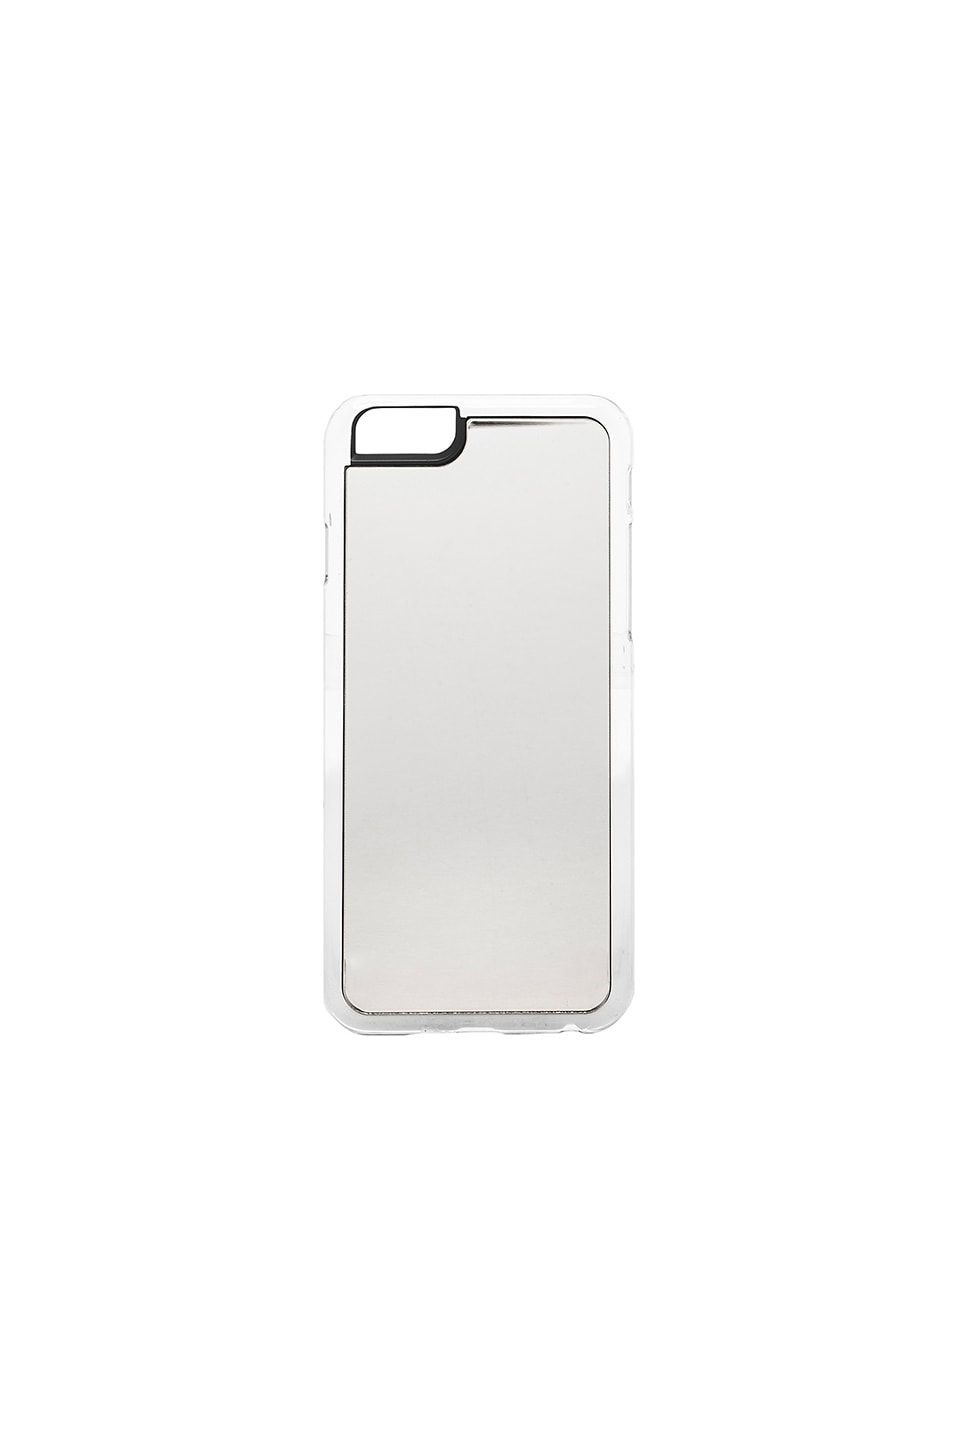 Mirror IPhone 6/6s Case